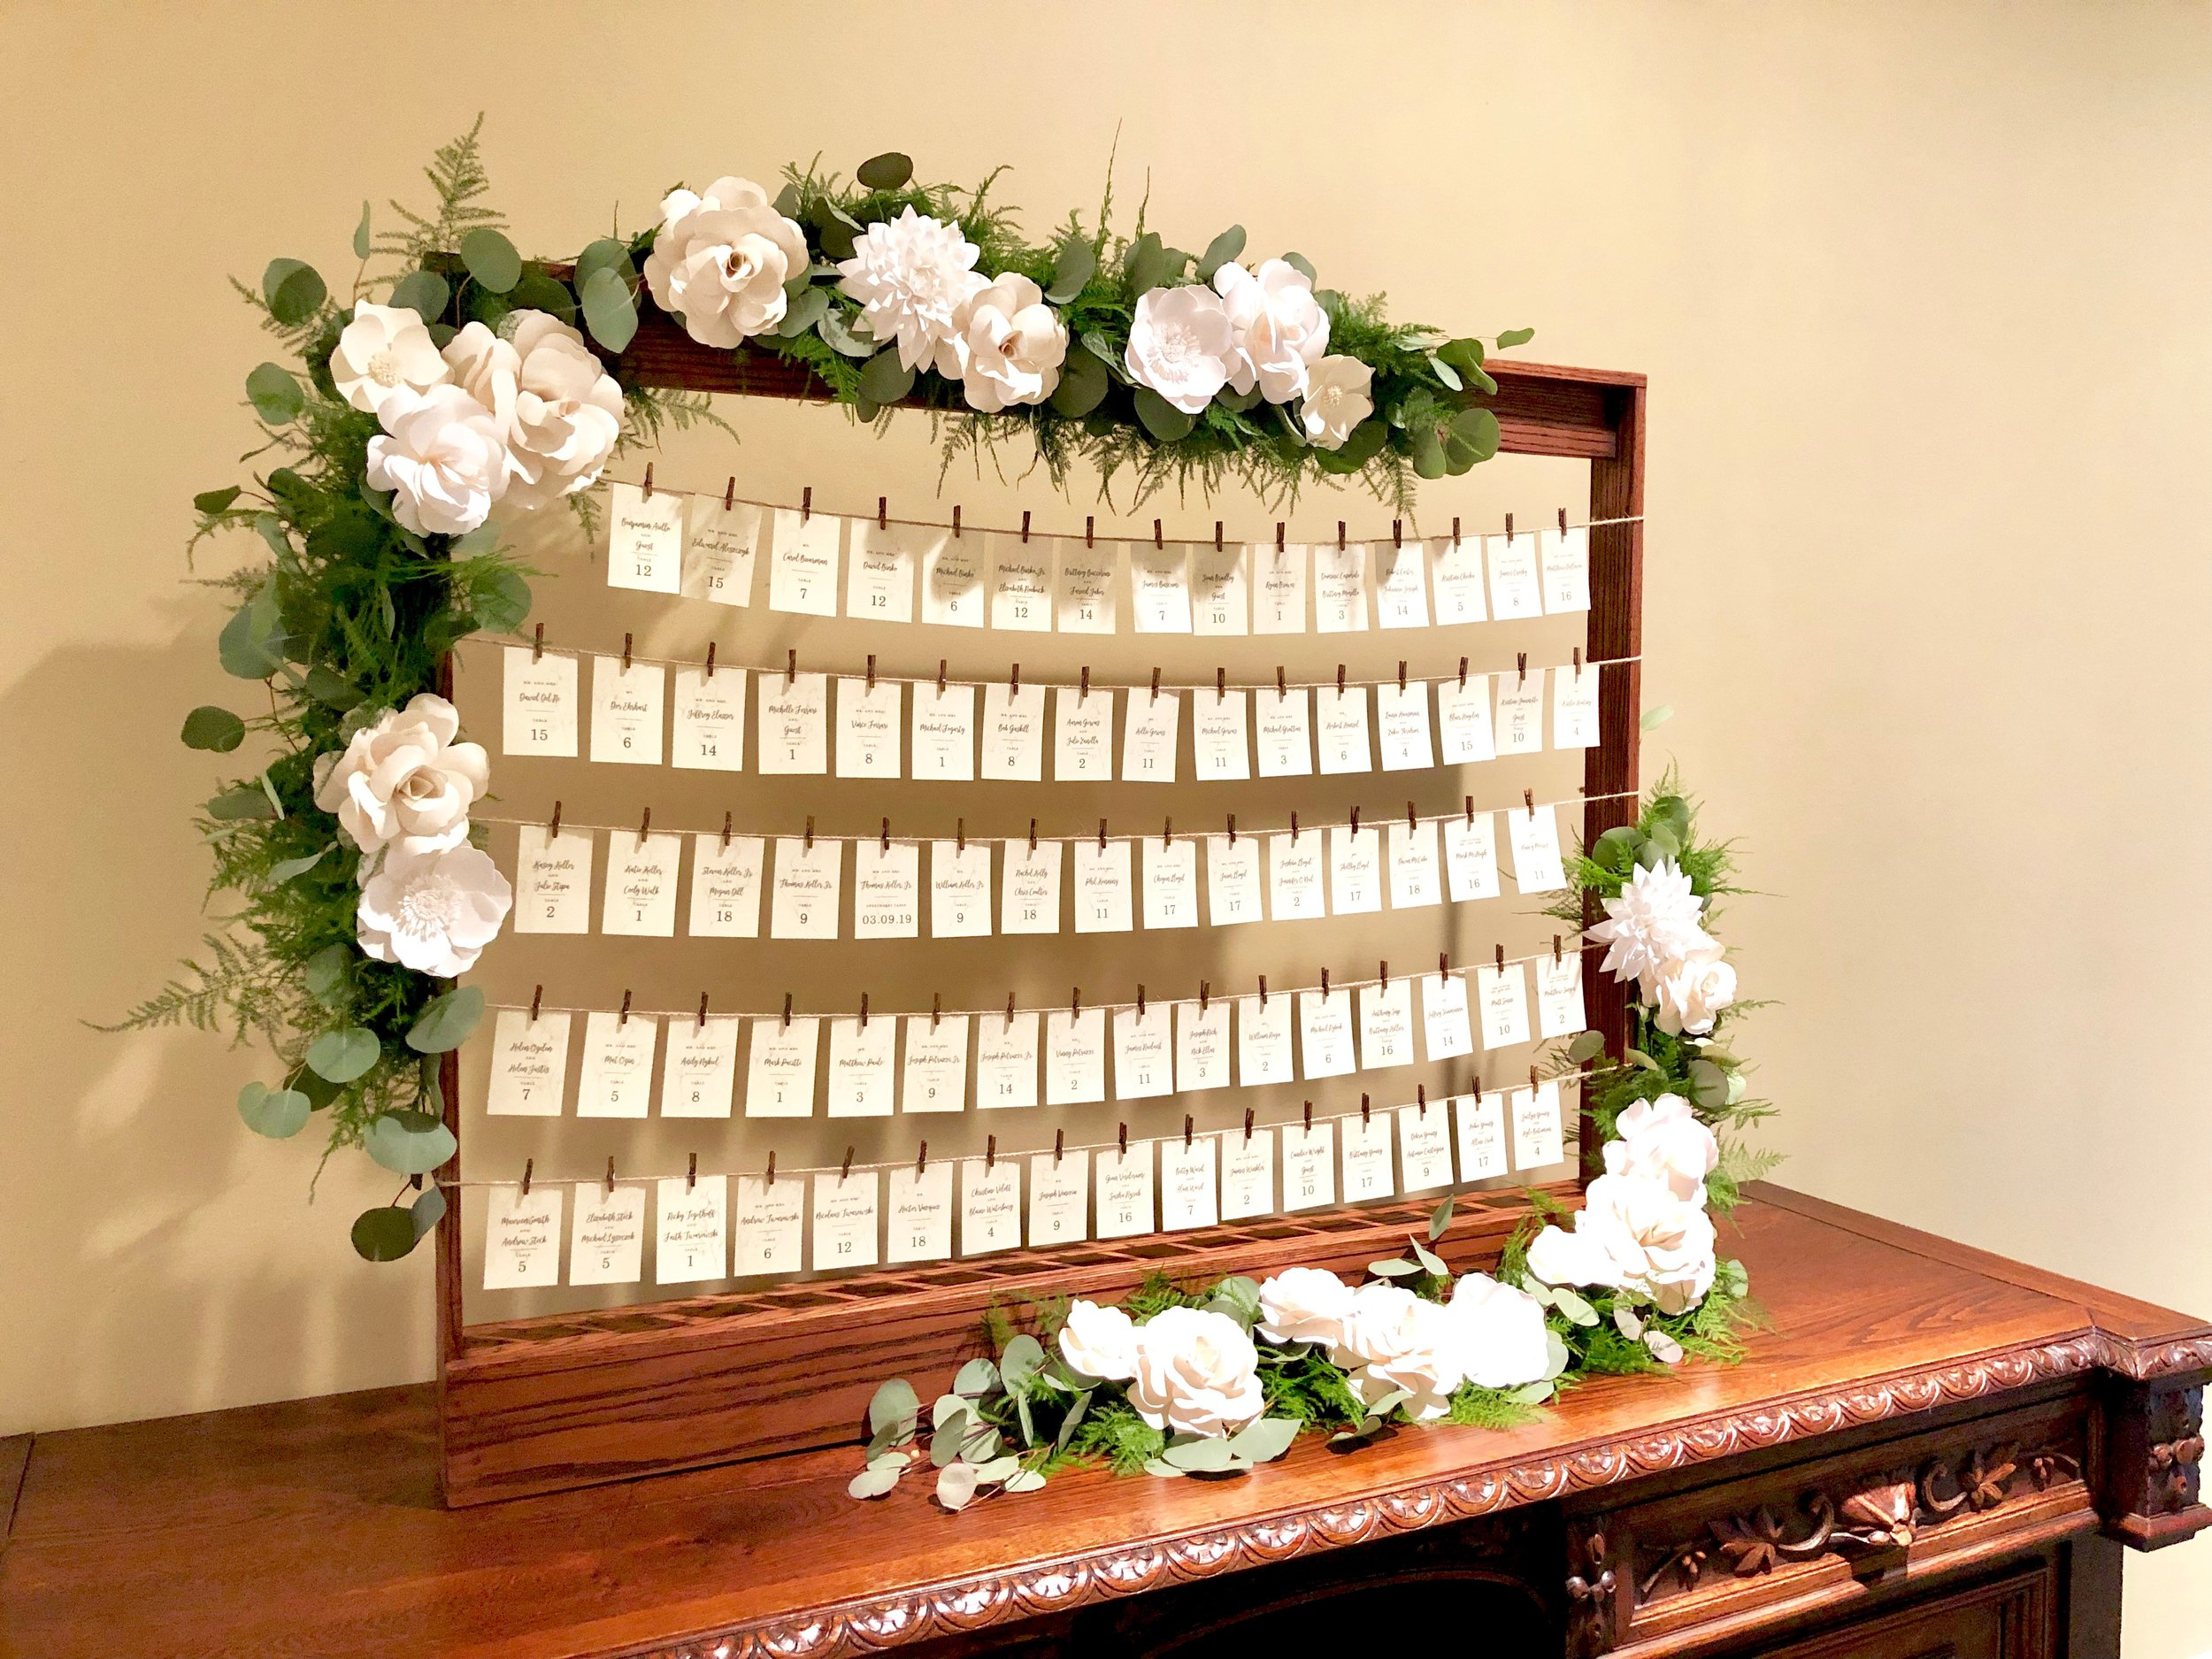 "Clothespin Place Card Holder - Rental Rate: 75.00 Undecorated, 115.00 Decorated with live greenery garland and paper flowers in color(s) of your choice. Custom place cards can be purchased separately for 0.50 each.Dimensions: 42""L x 34""H x 4""WQuantity Available: 1Includes mini clothespins in your choice of natural or espresso stained wood."